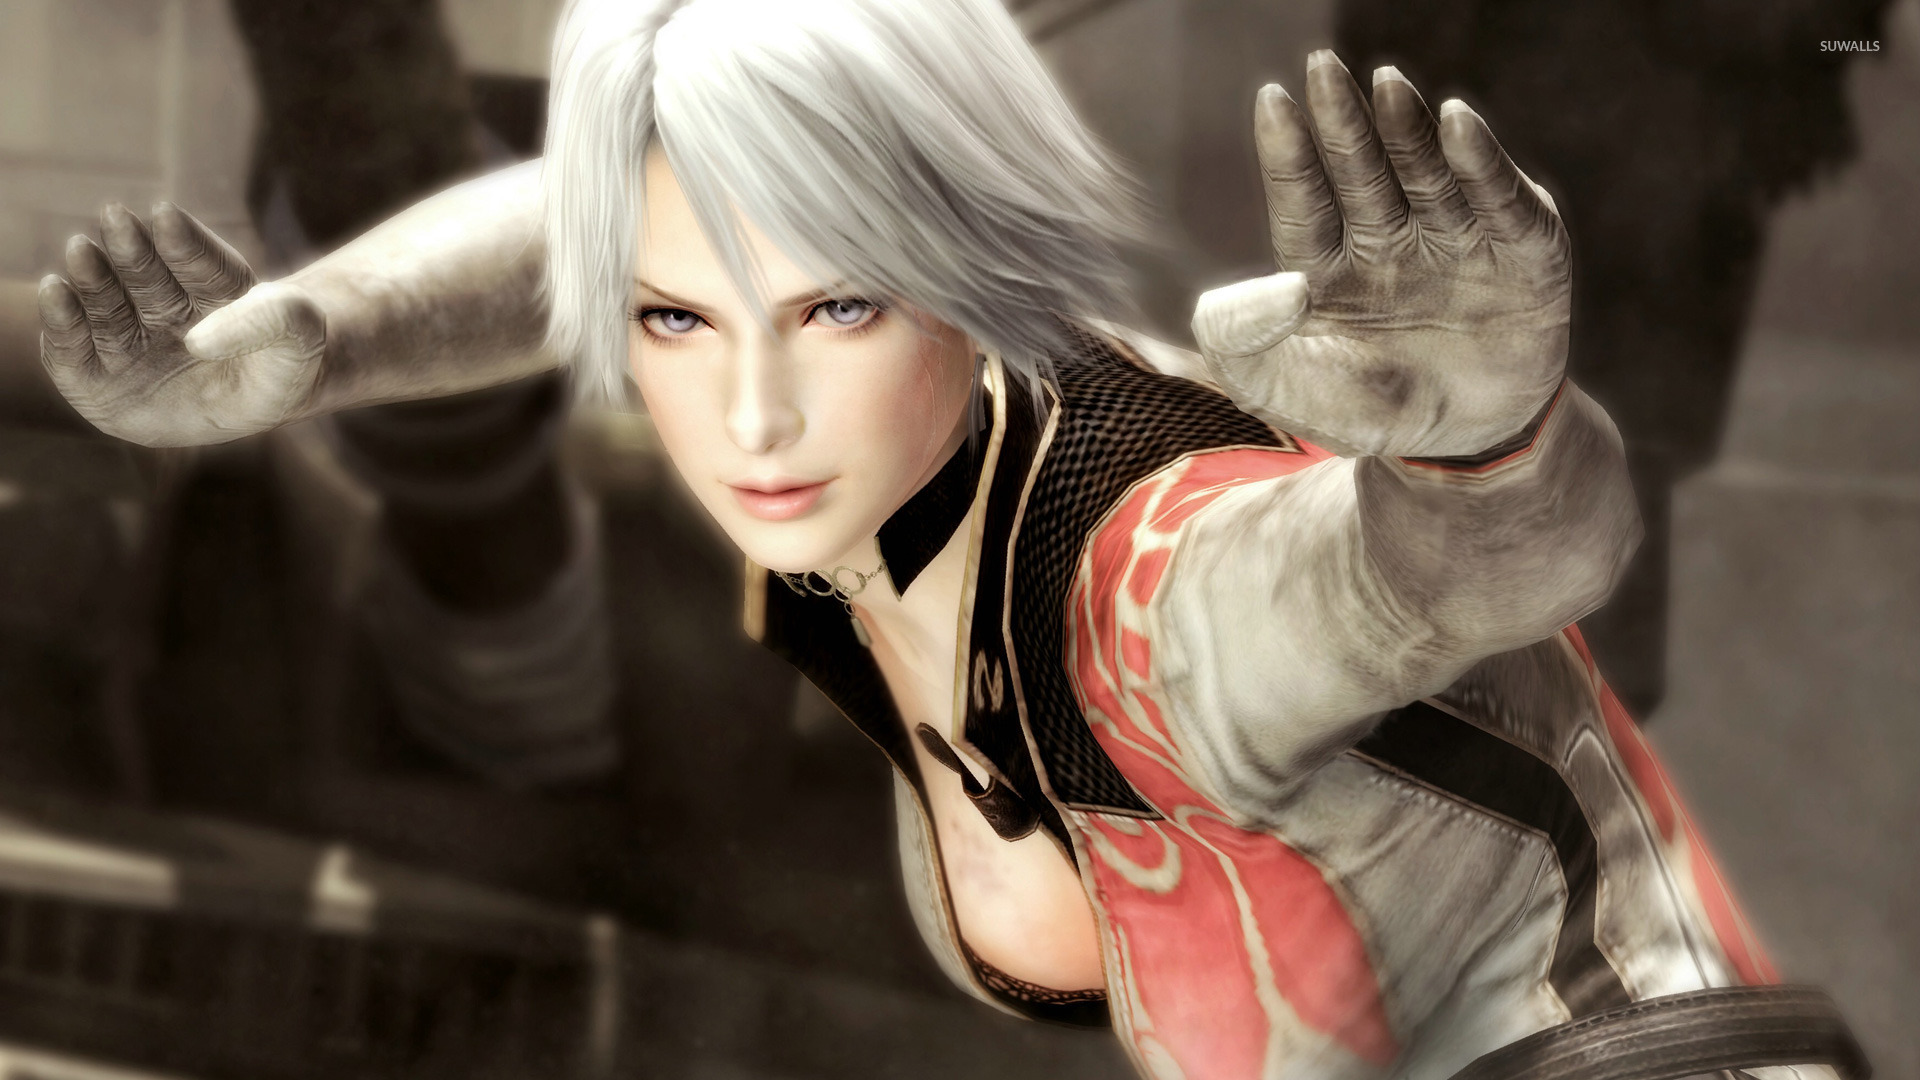 Christie Dead Or Alive 5 Wallpaper Game Wallpapers 26812